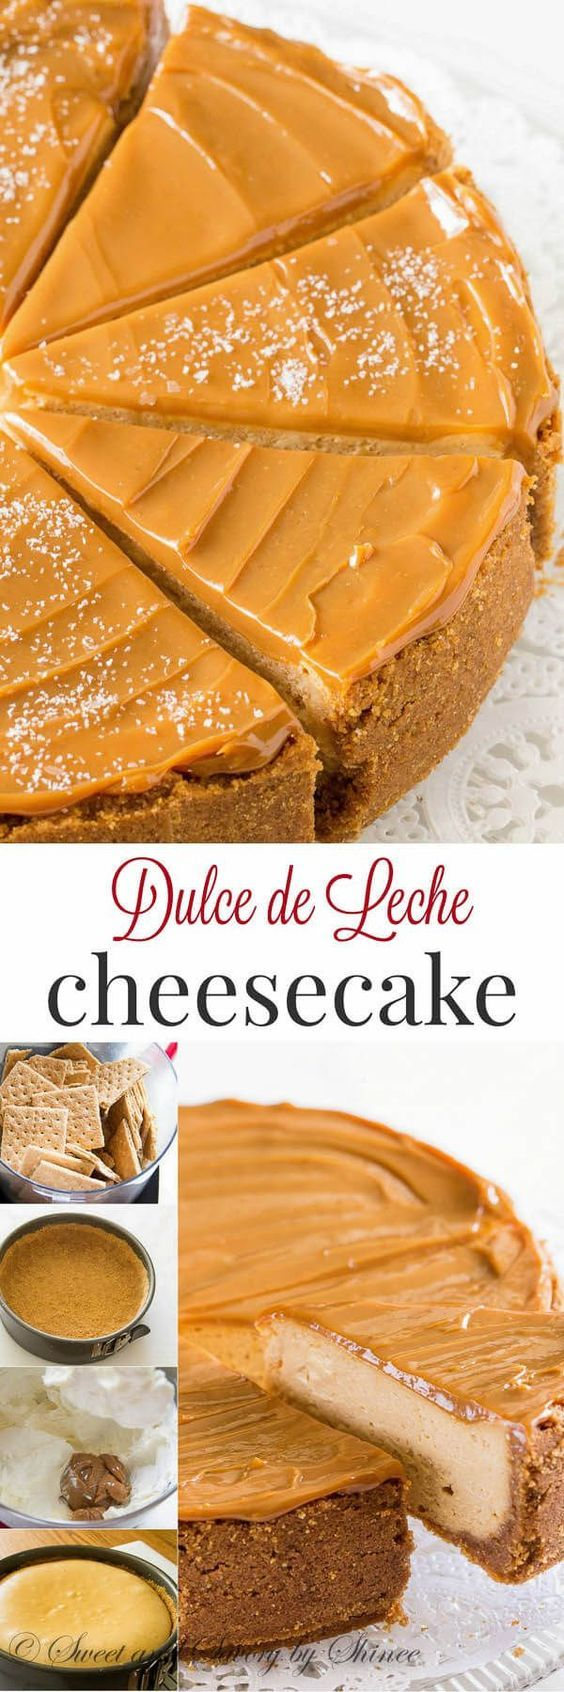 Sweet and creamy with touch of sea salt this decadent dulce de leche cheesecake…